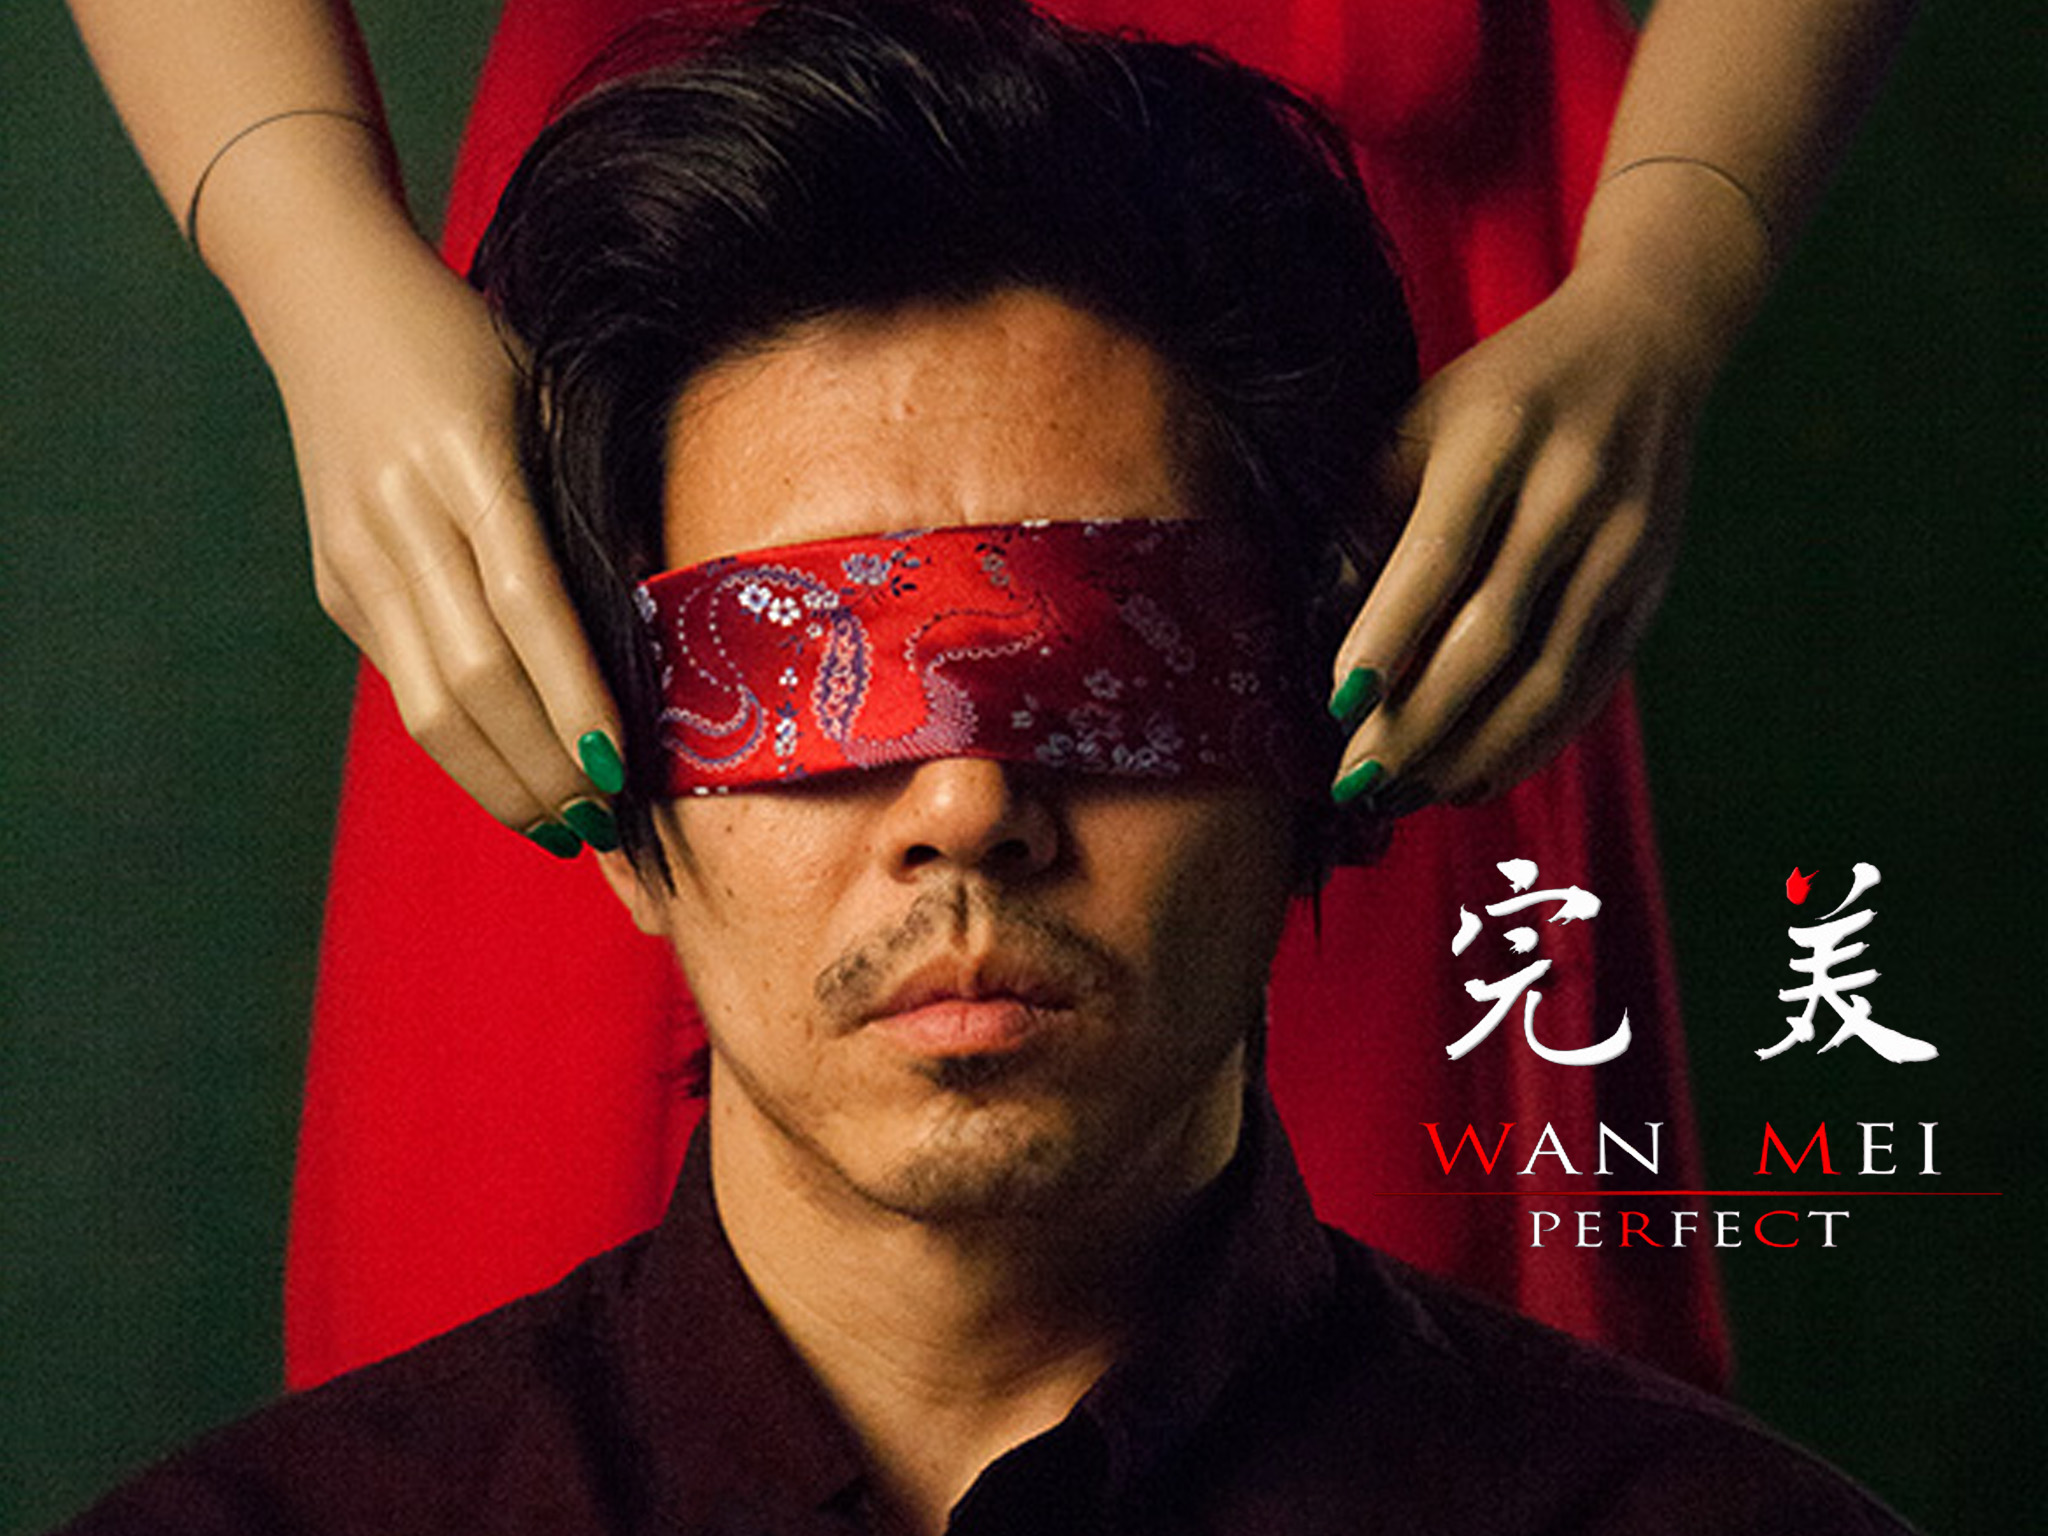 An unfaithful woman, a betrayed man, and a mannequin? Things get worse in this short about love in all its forms. Directed by Yiyi Yin.